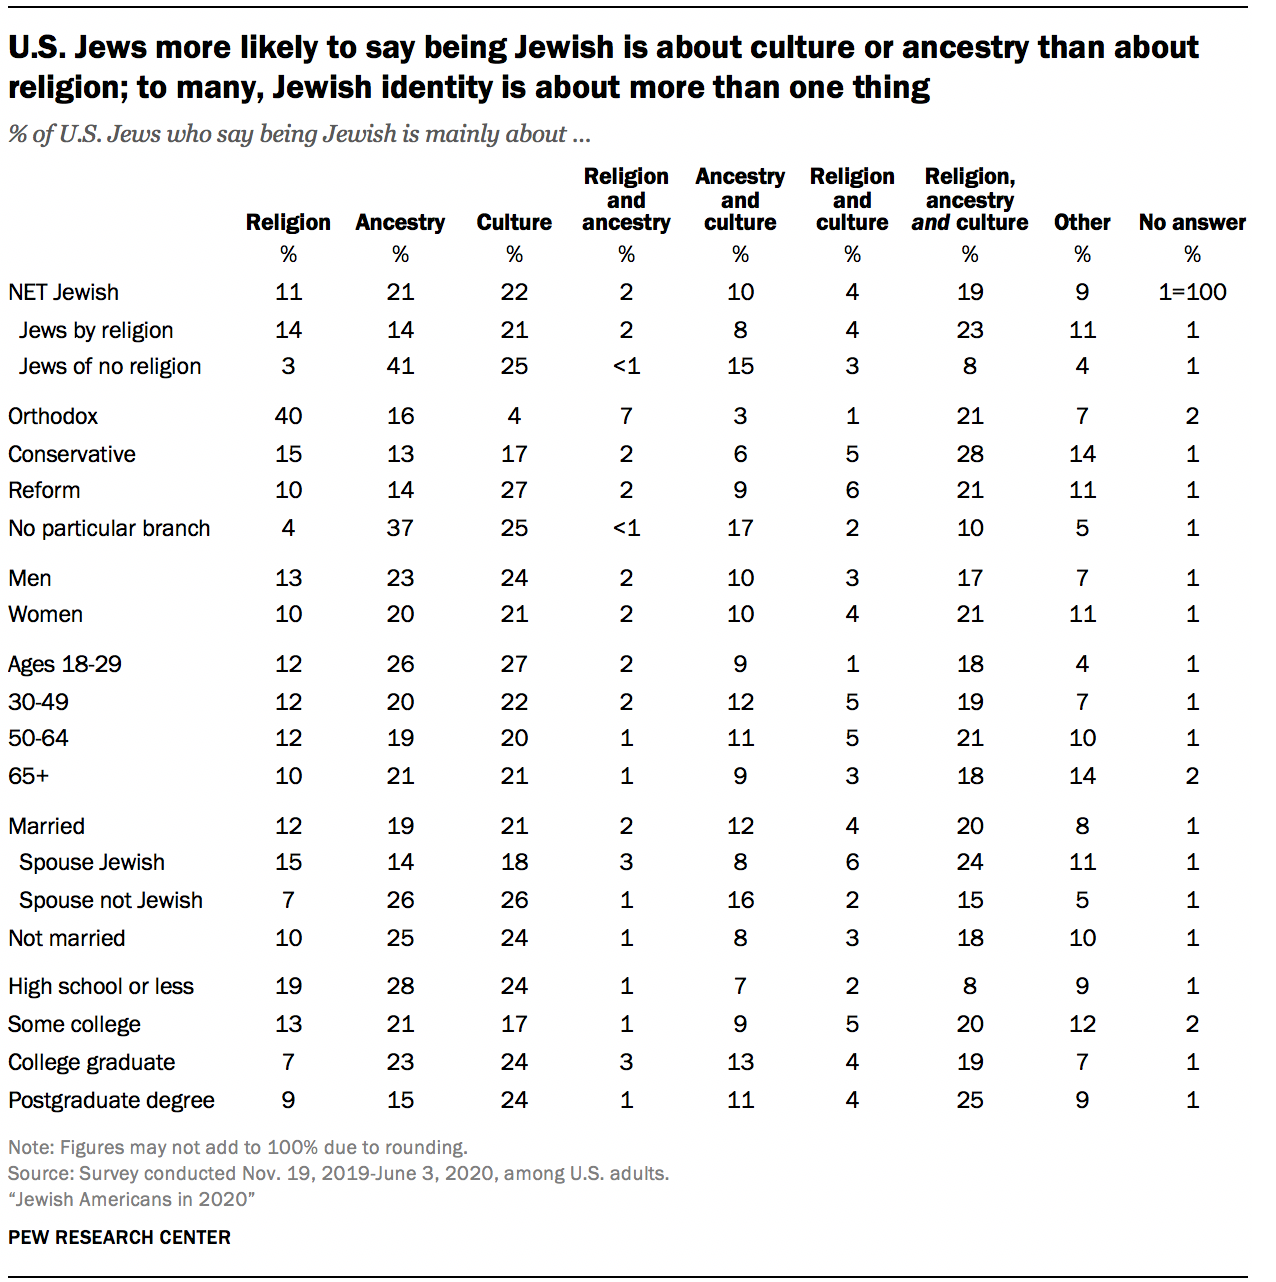 U.S. Jews more likely to say being Jewish is about culture or ancestry than about religion; to many, Jewish identity is about more than one thing